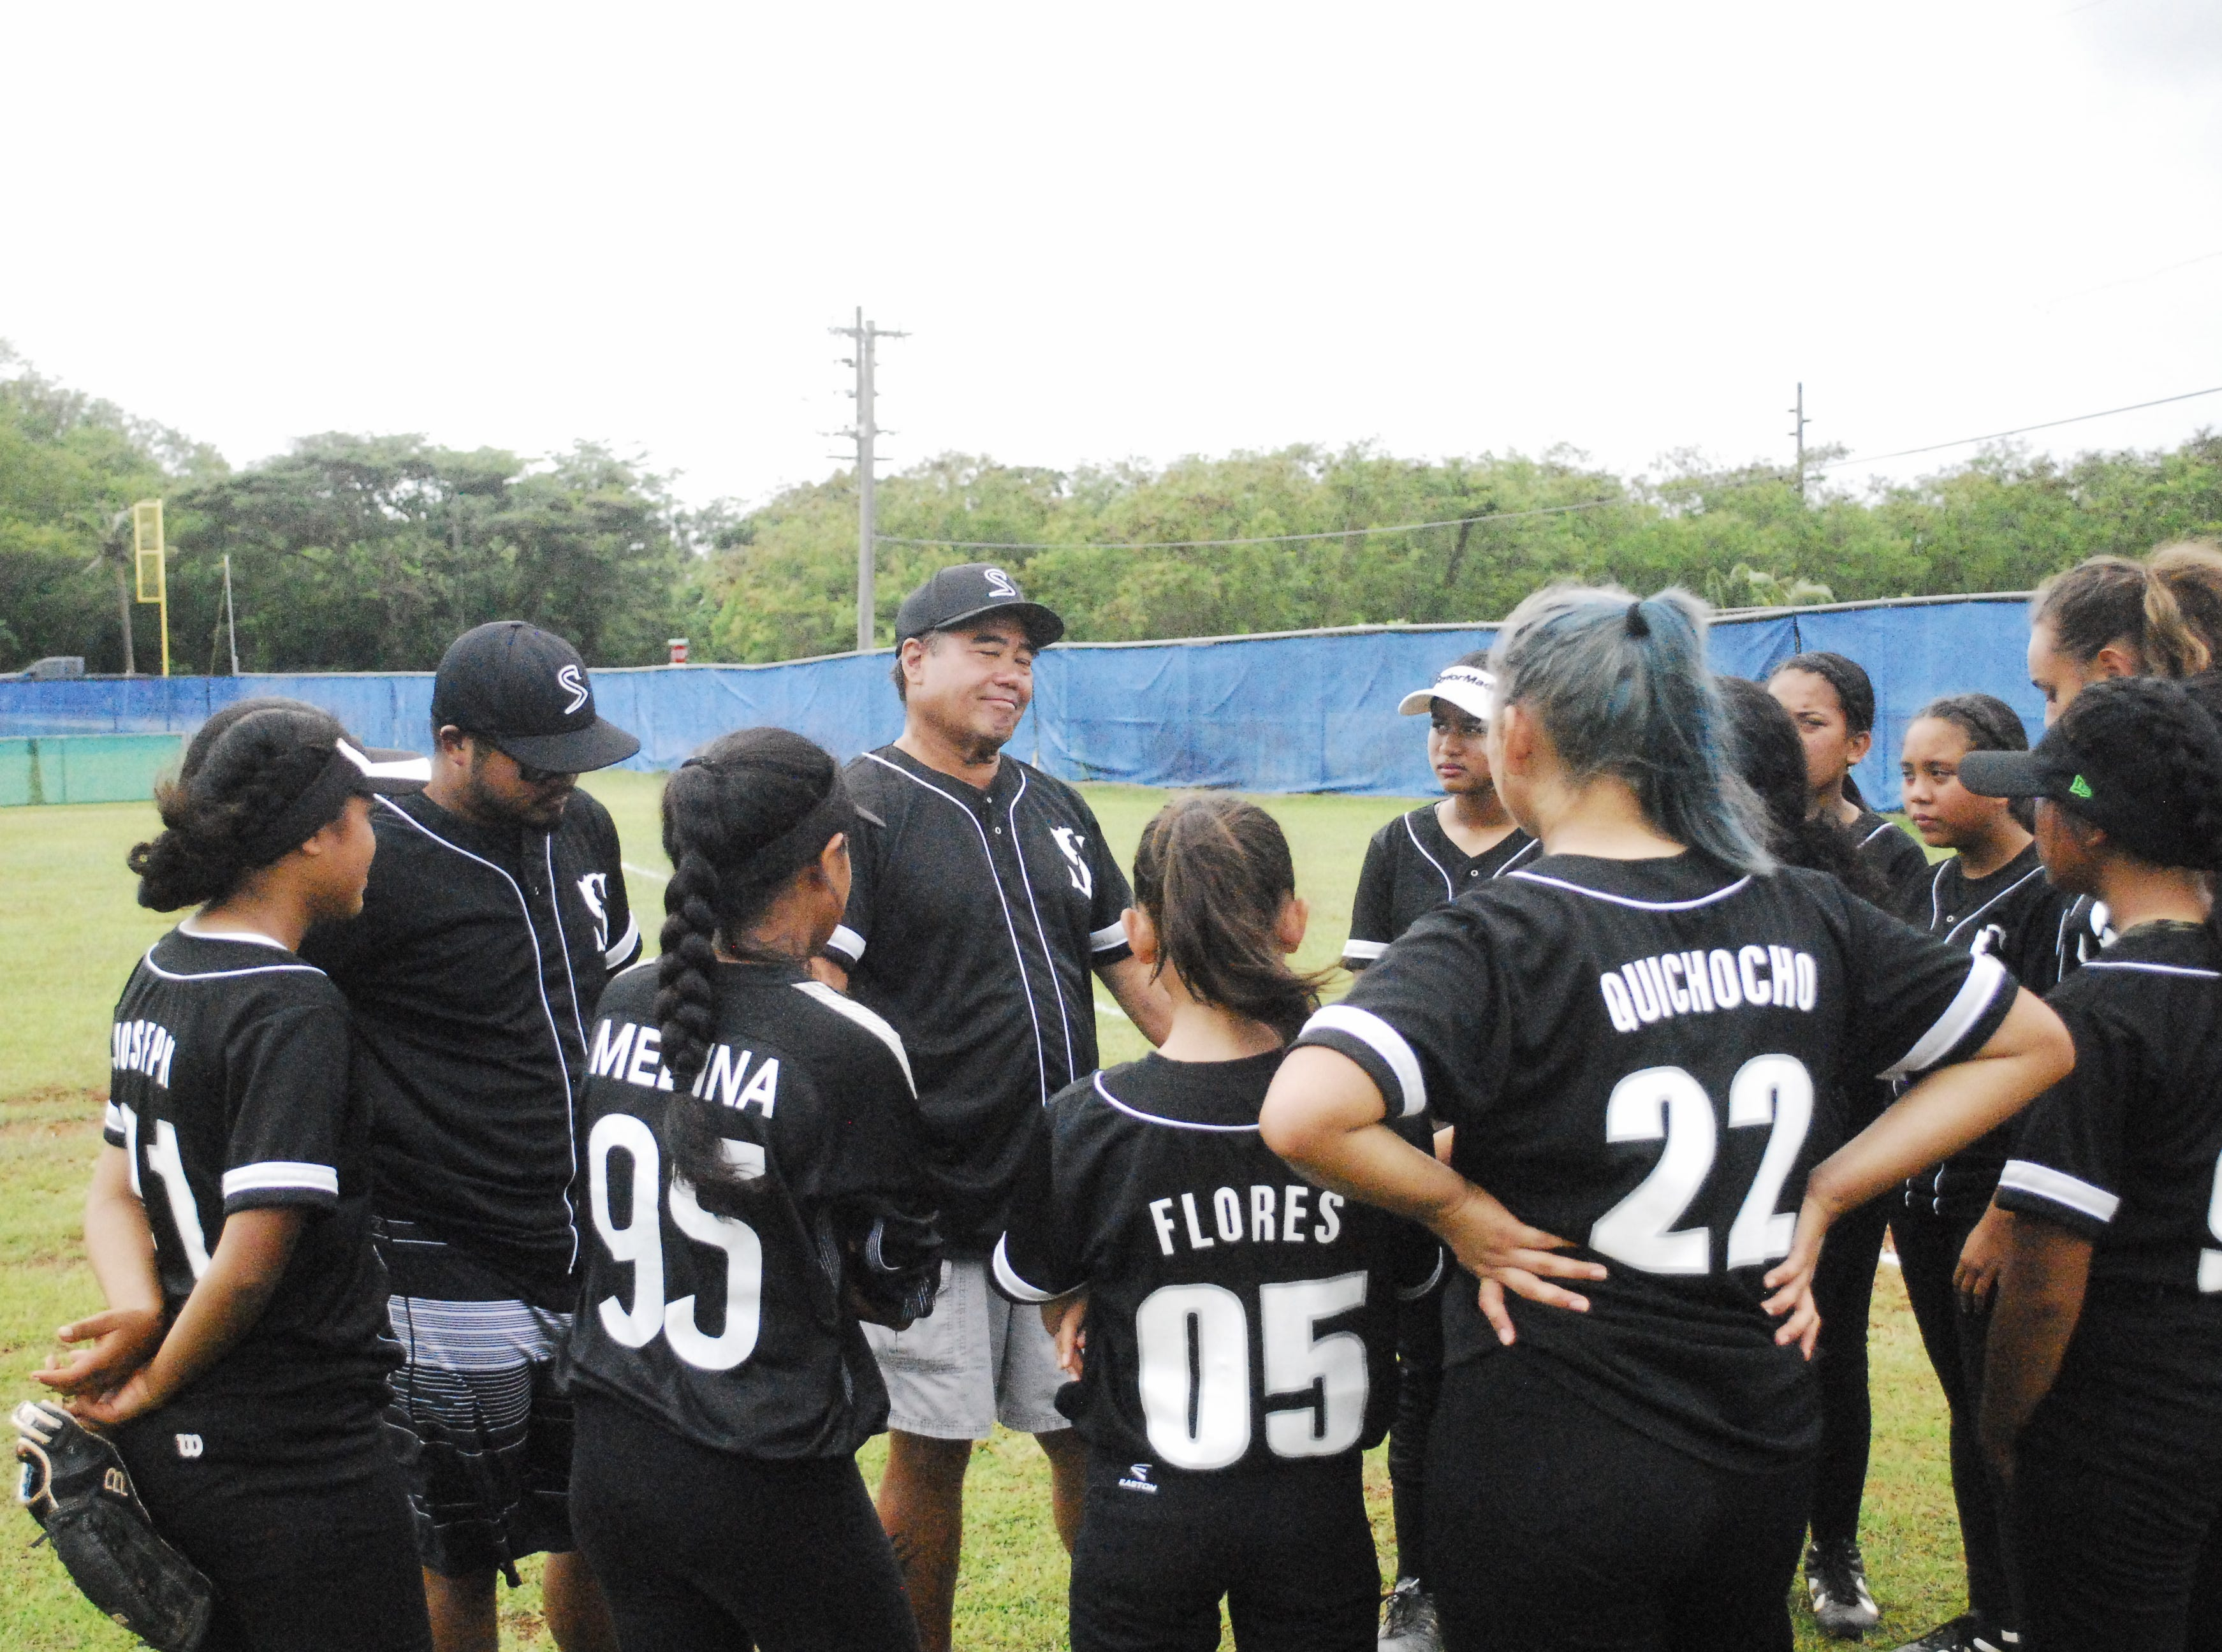 Simon Sanchez Sharks coach Jimmy Naholowaa during his post-game pep talk following the Sharks' 9-8 loss to Academy in a IIAAG High School Girls Softball game on Saturday, Feb. 2 at Tai Field in Mangilao.